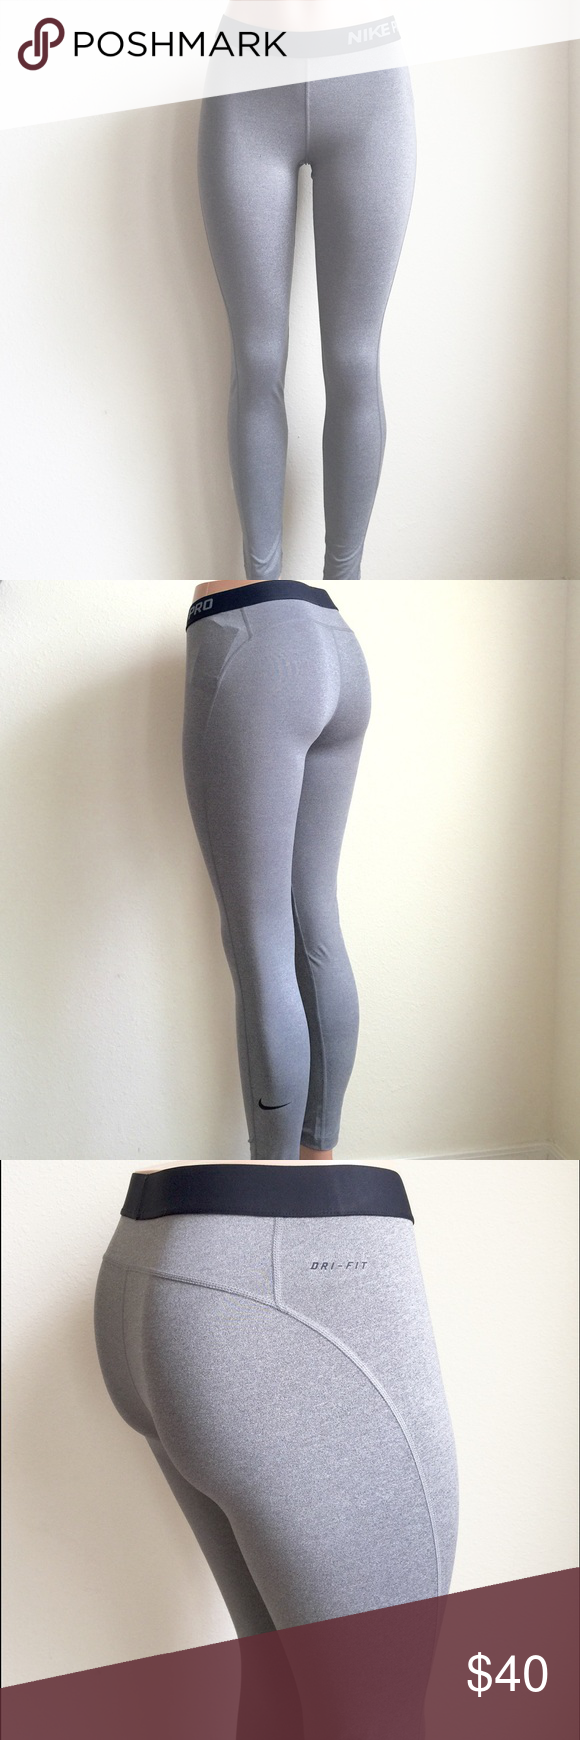 Nike Pro Leggings Pro tights made with sweat-wicking material and elastic logo waistband. New with tags. ♦️No trades, the price is firm unless bundled. Nike Pants Leggings